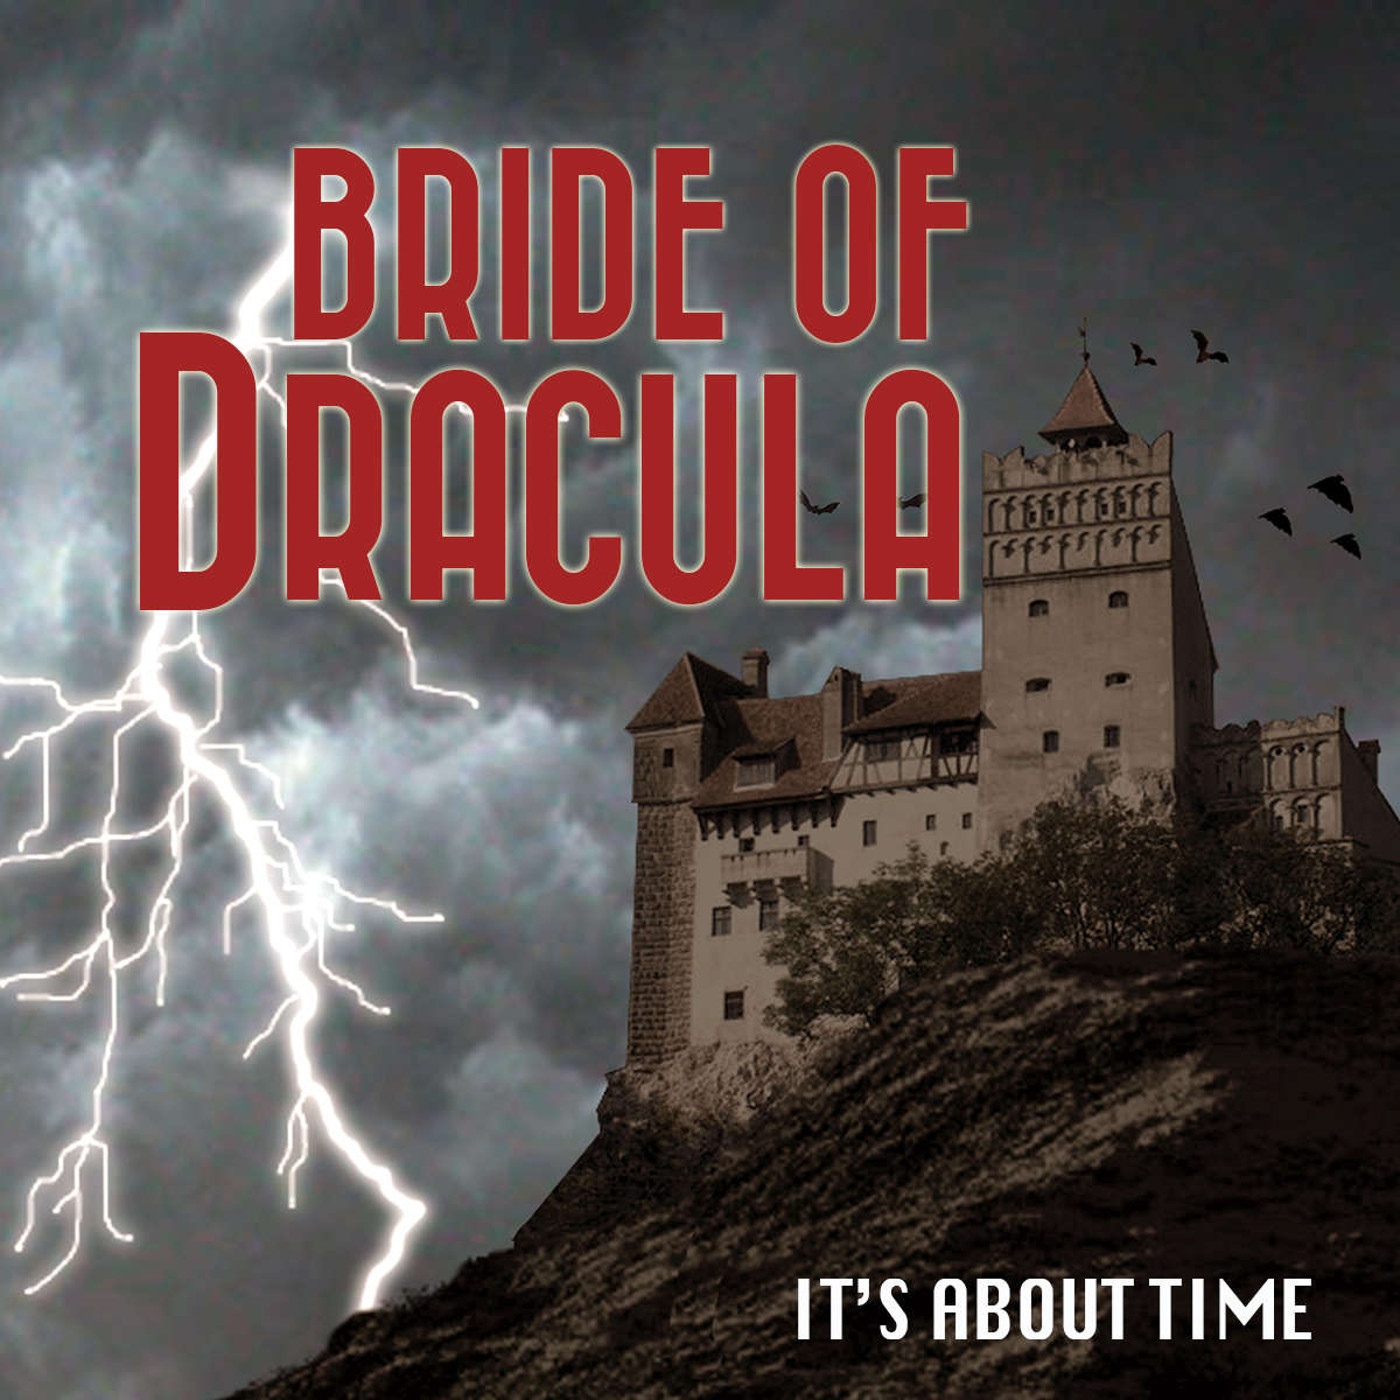 S01E03-Bride of Dracula - A trip back to Transylvania to raise sales at Halloween